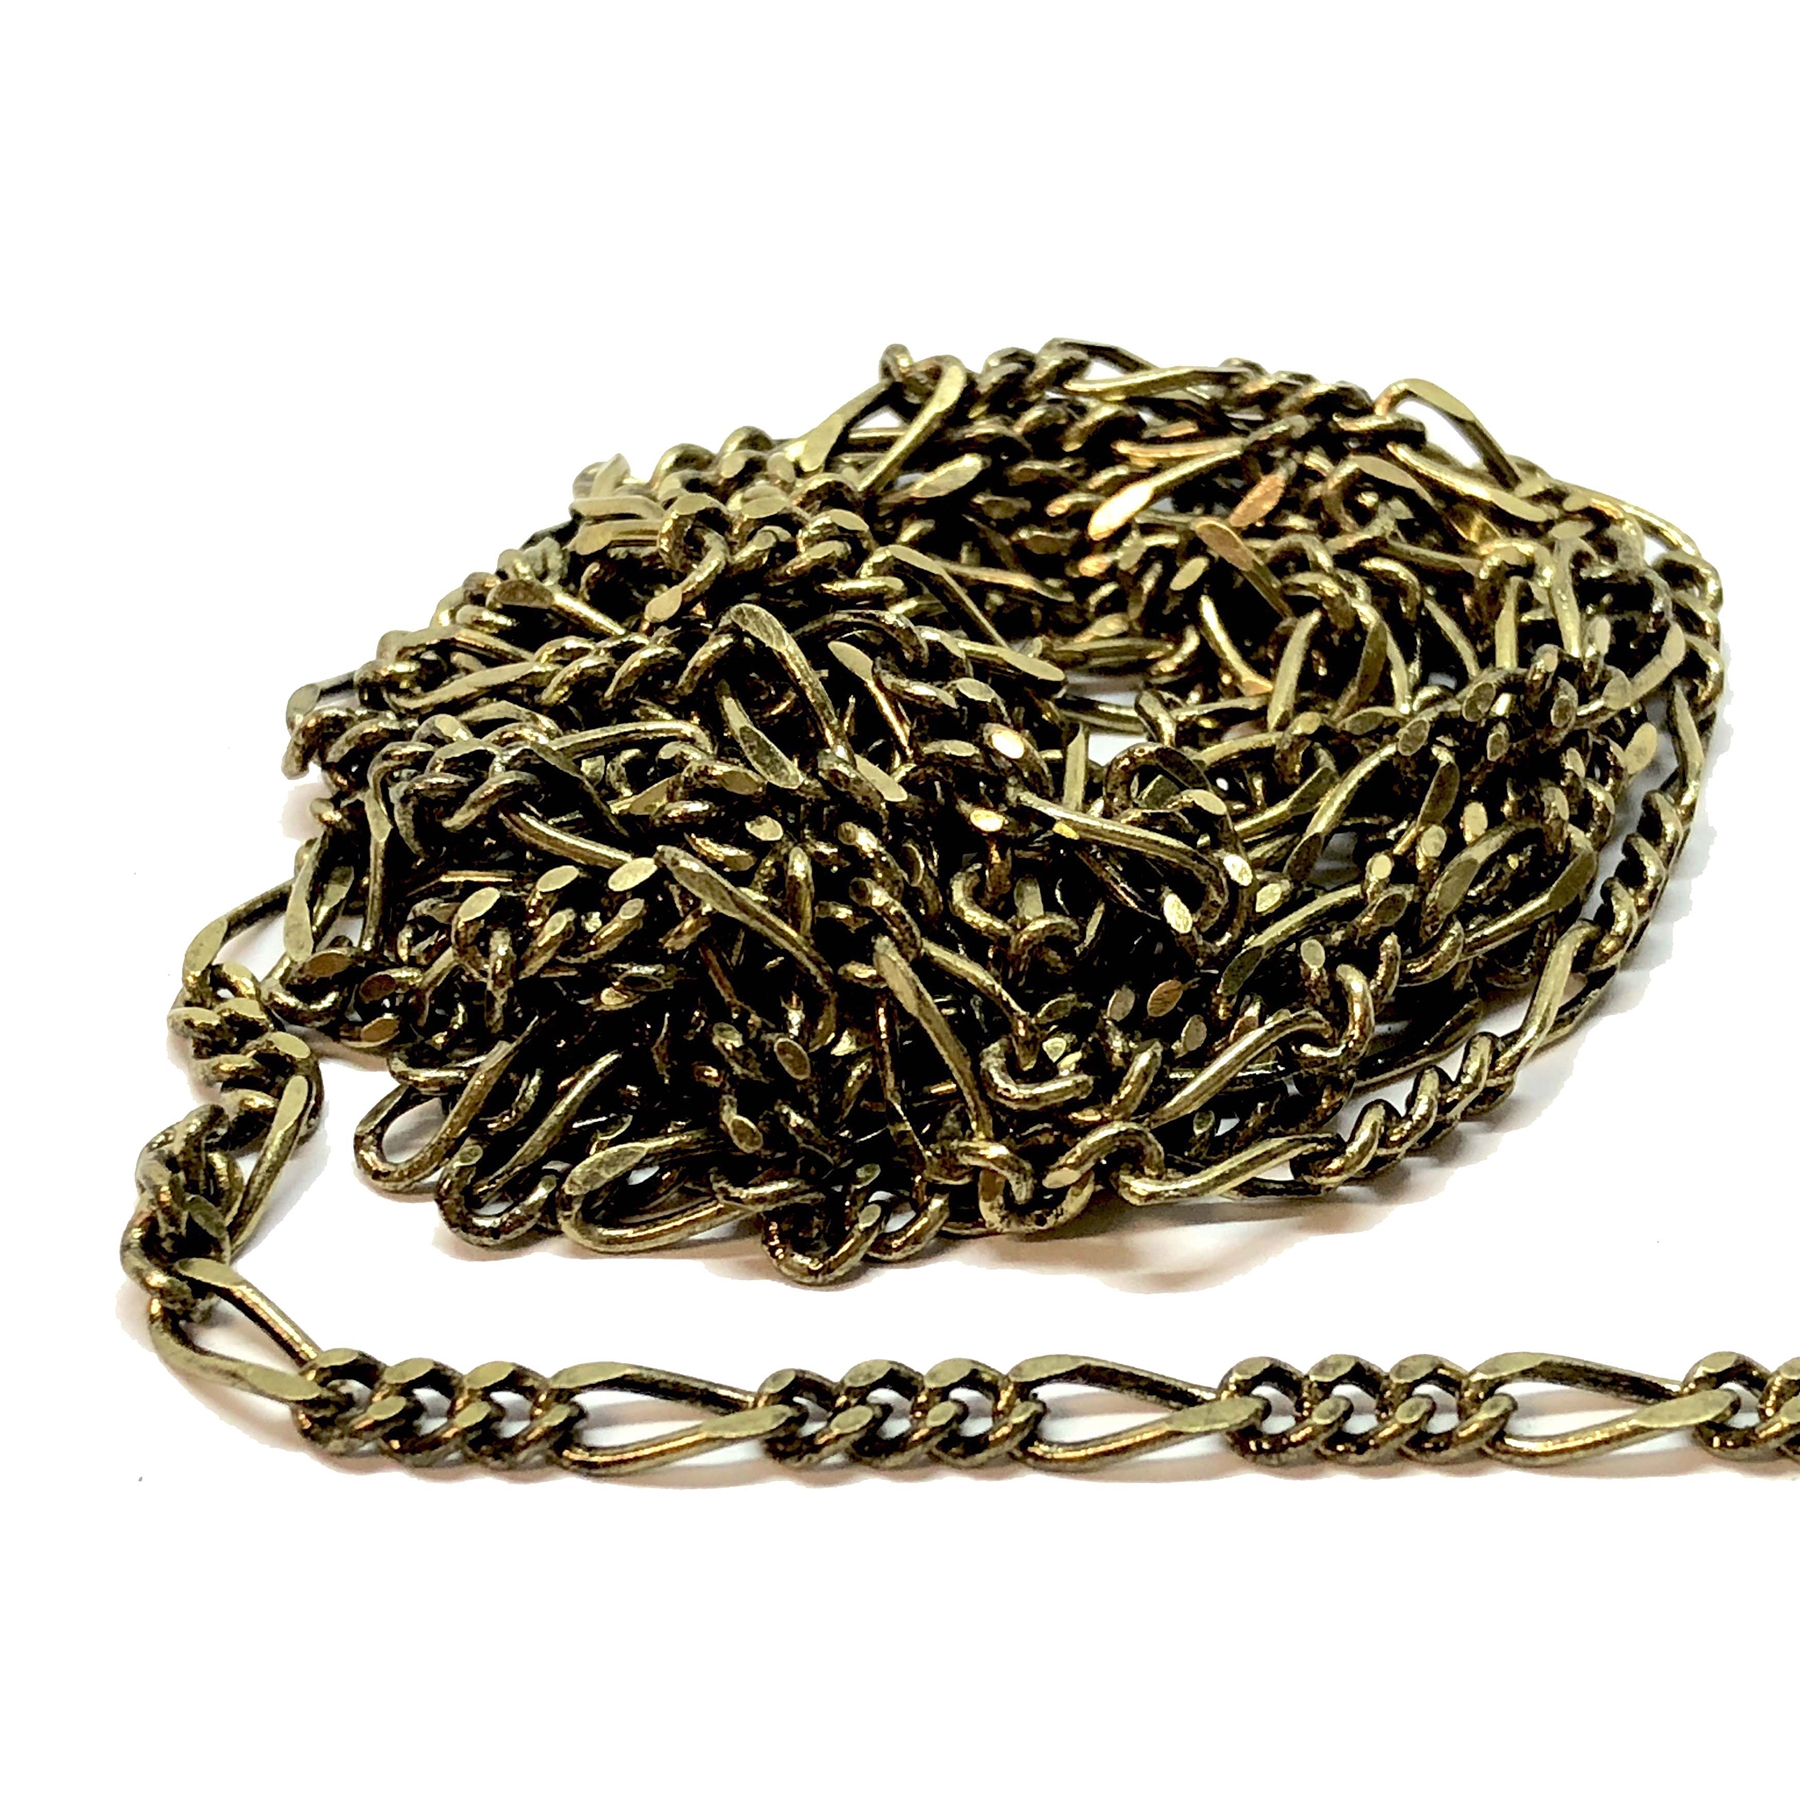 figaro antique brass chain, antique brass, figaro chain, brass chain, jewelry supplies, vintage supplies, beading supplies, bracelet chain, necklace chain, chain, jewelry chain, antique brass chain, nickel free, B'sue Boutiques, 3x7 links, 07596